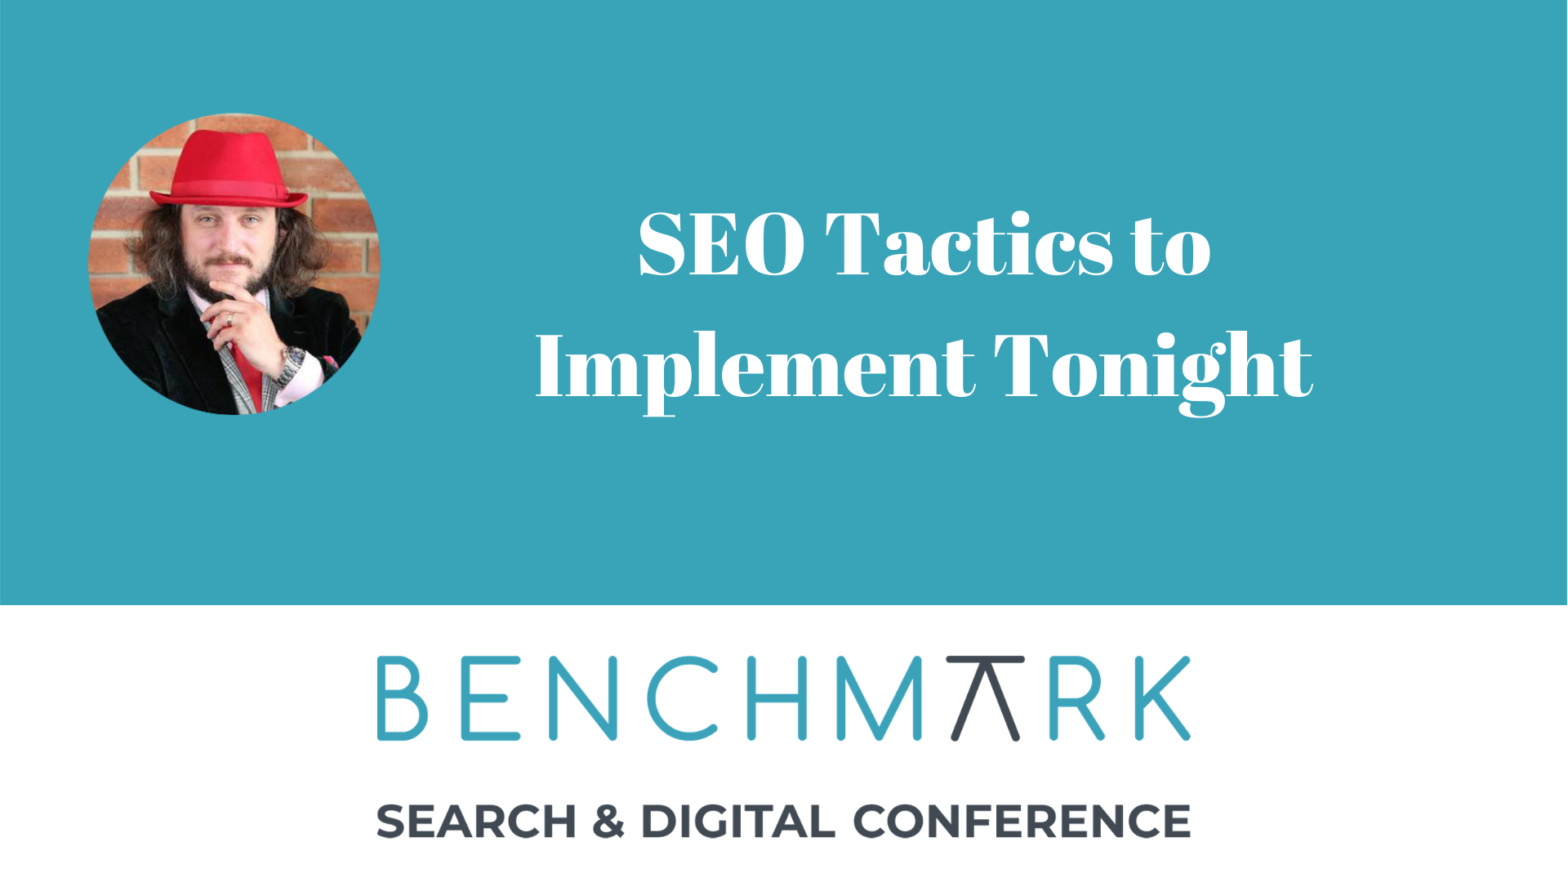 SEO Tactics to Implement Tonight